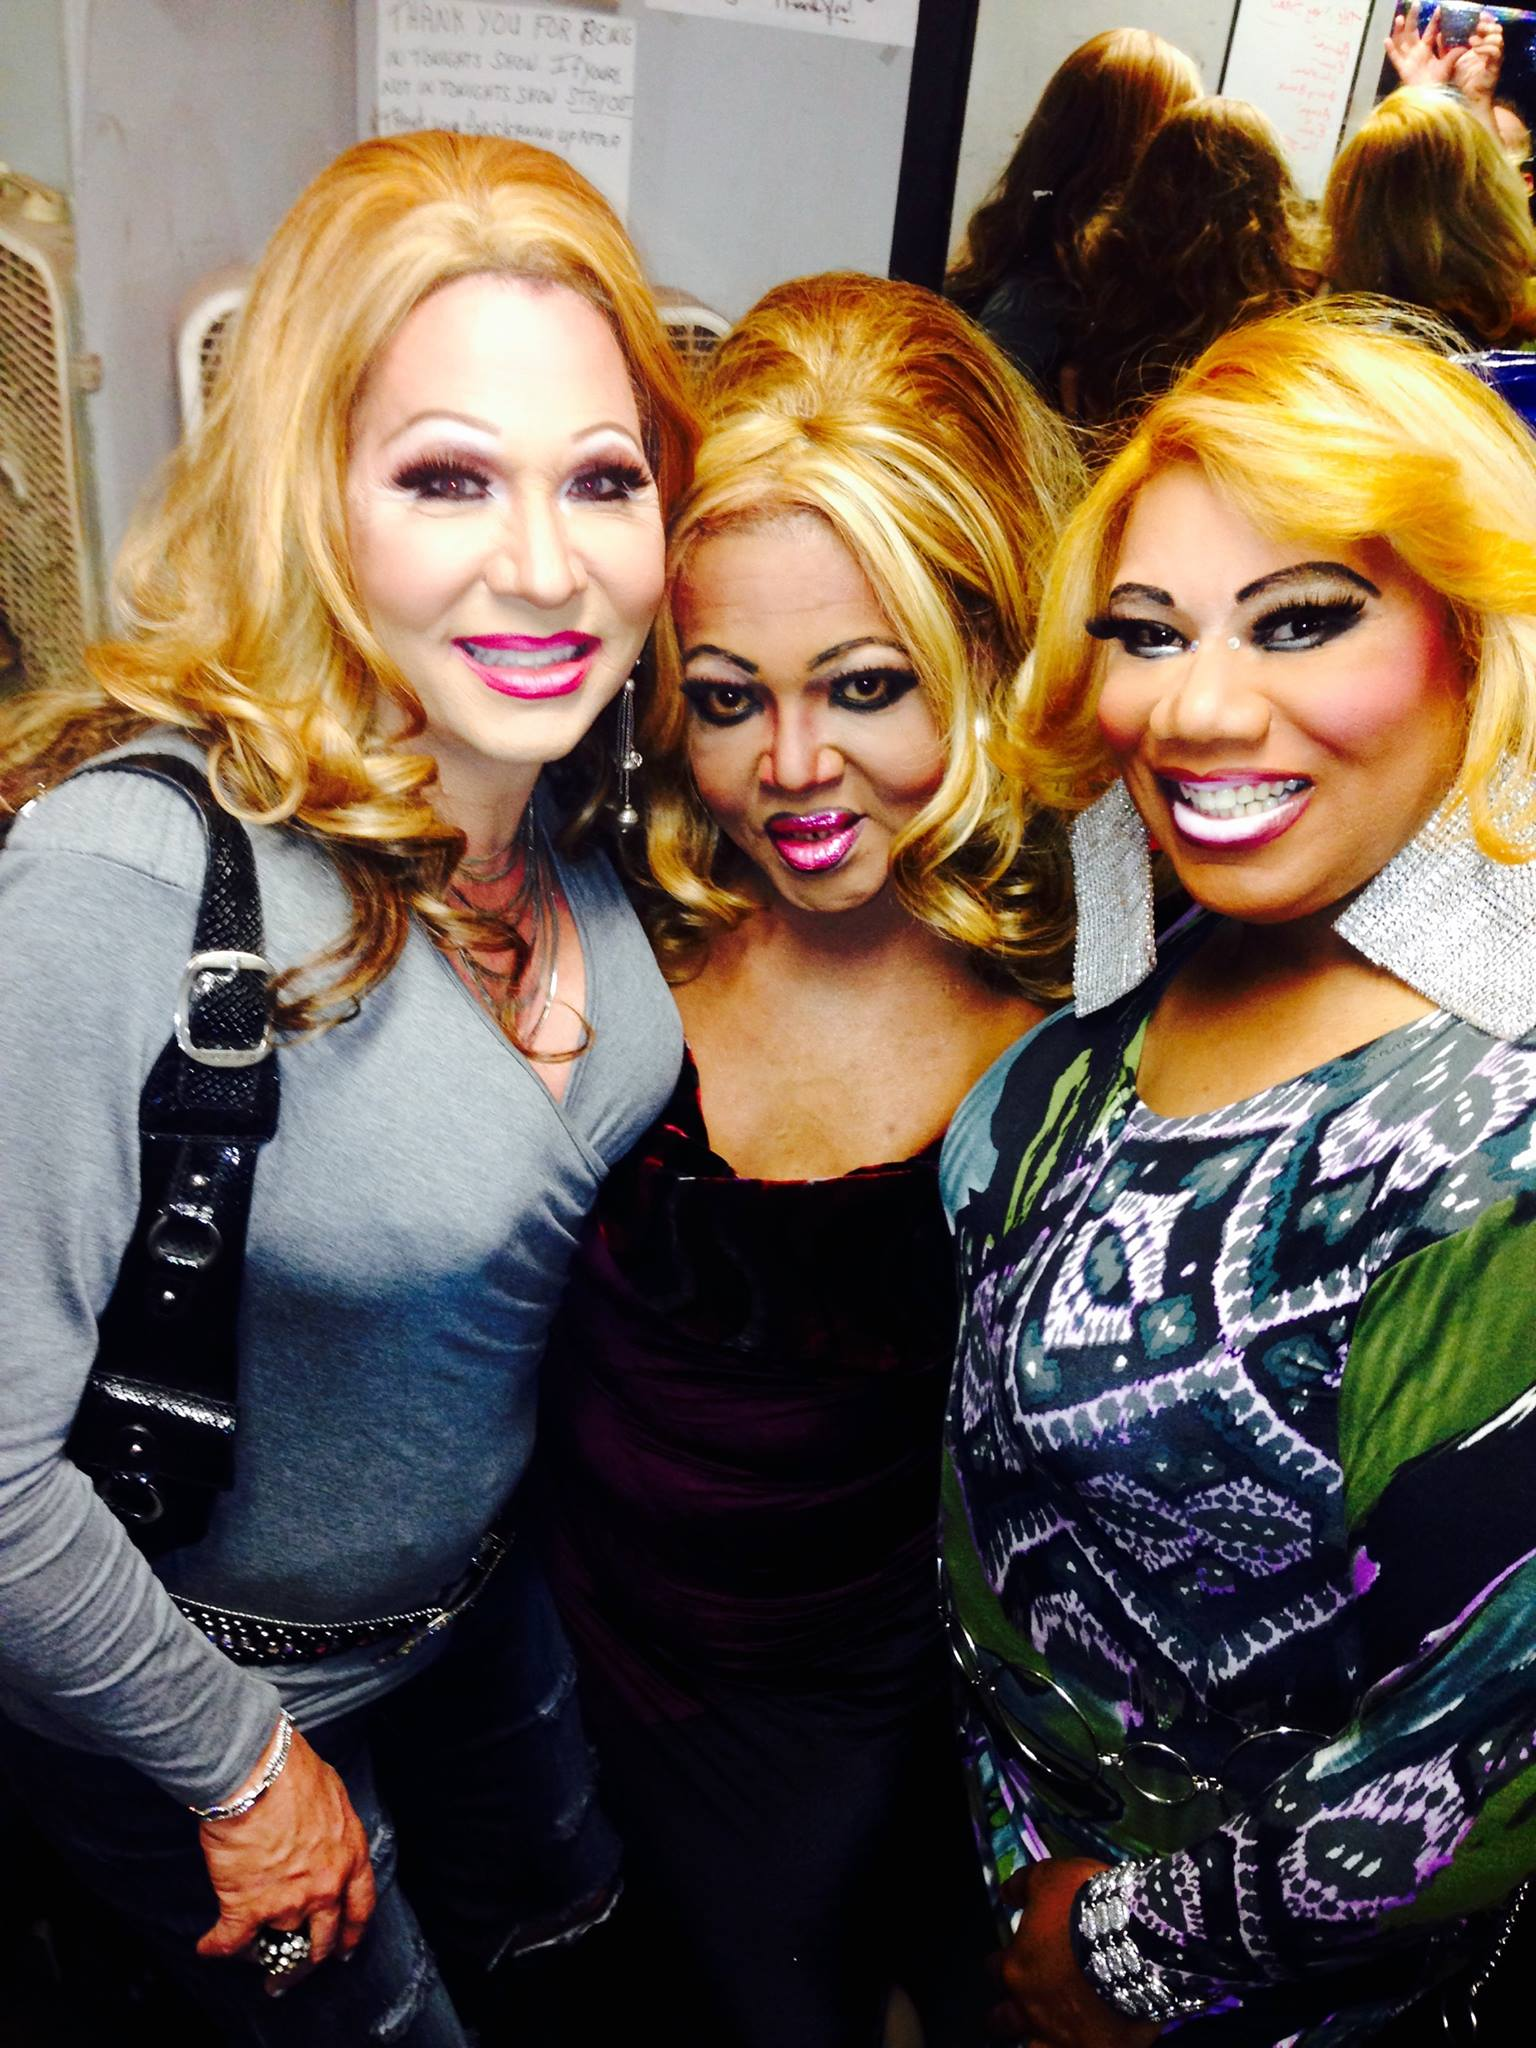 Sonya Ross, Georgia Jackson and Vee Love